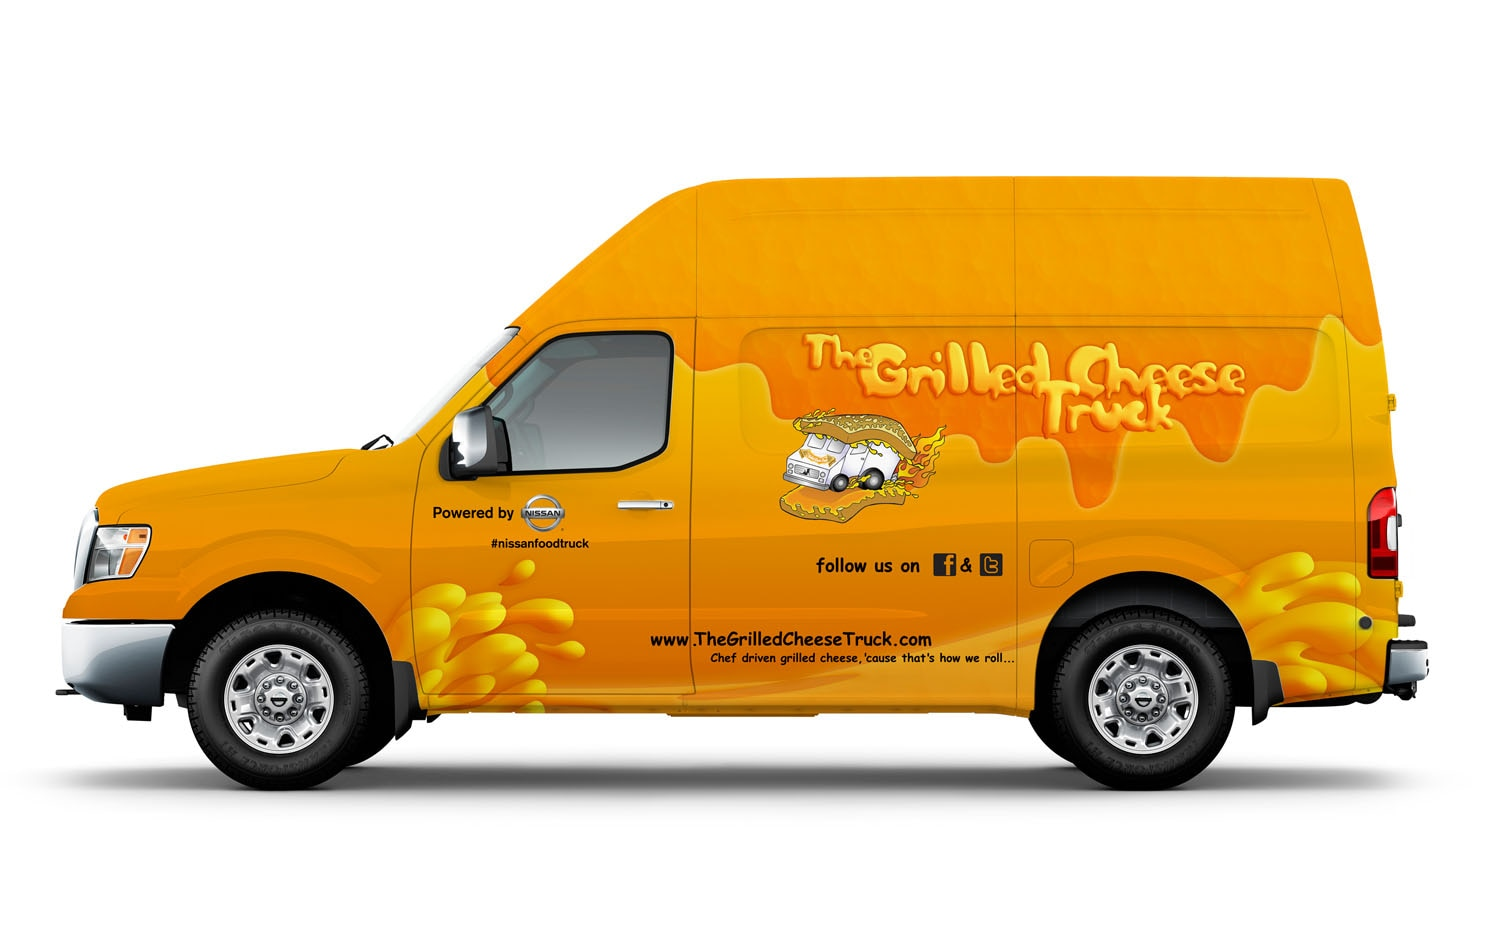 2012 Nissan NV High Roof Grilled Cheese Truck Concept Left Side1